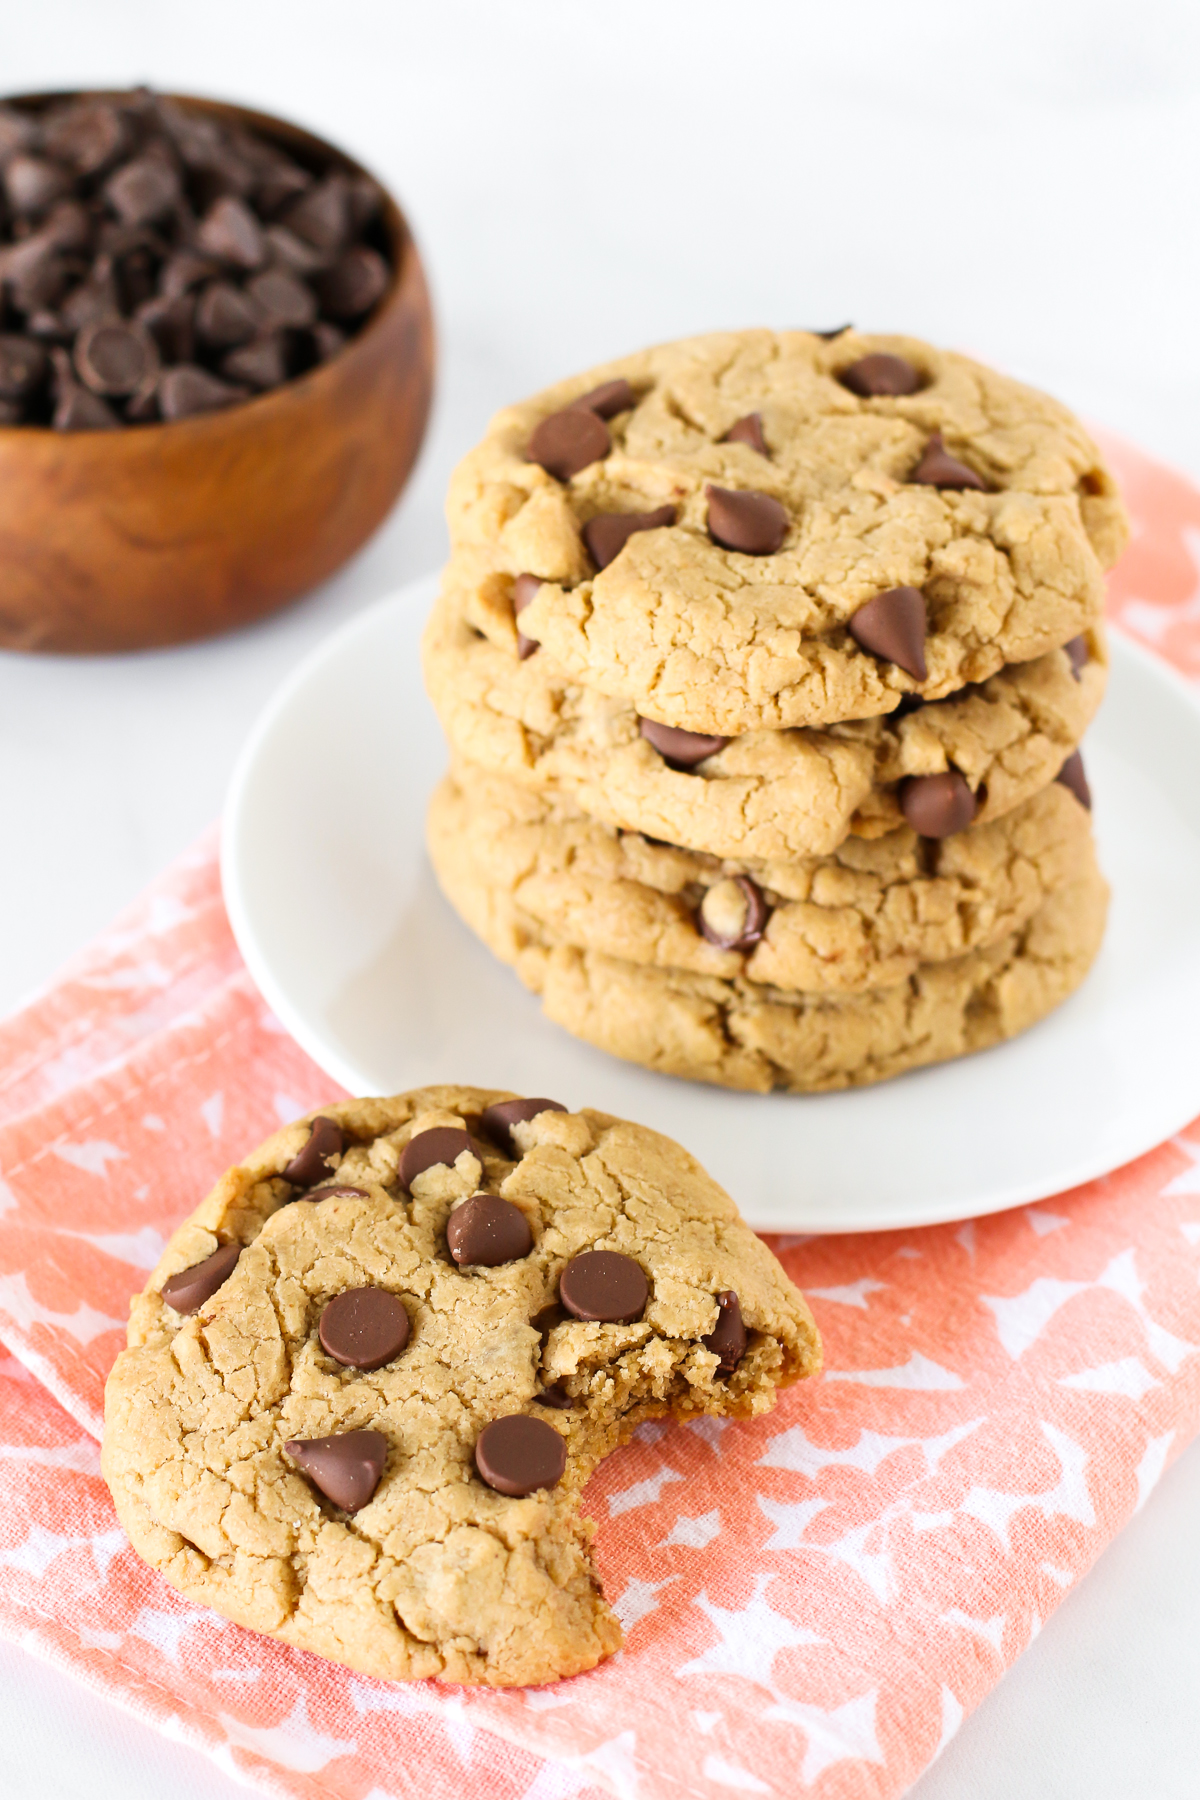 Gluten Free Vegan Peanut Butter Chocolate Chip Cookies. For all of you PB and chocolate lovers out there, these cookies are for you!